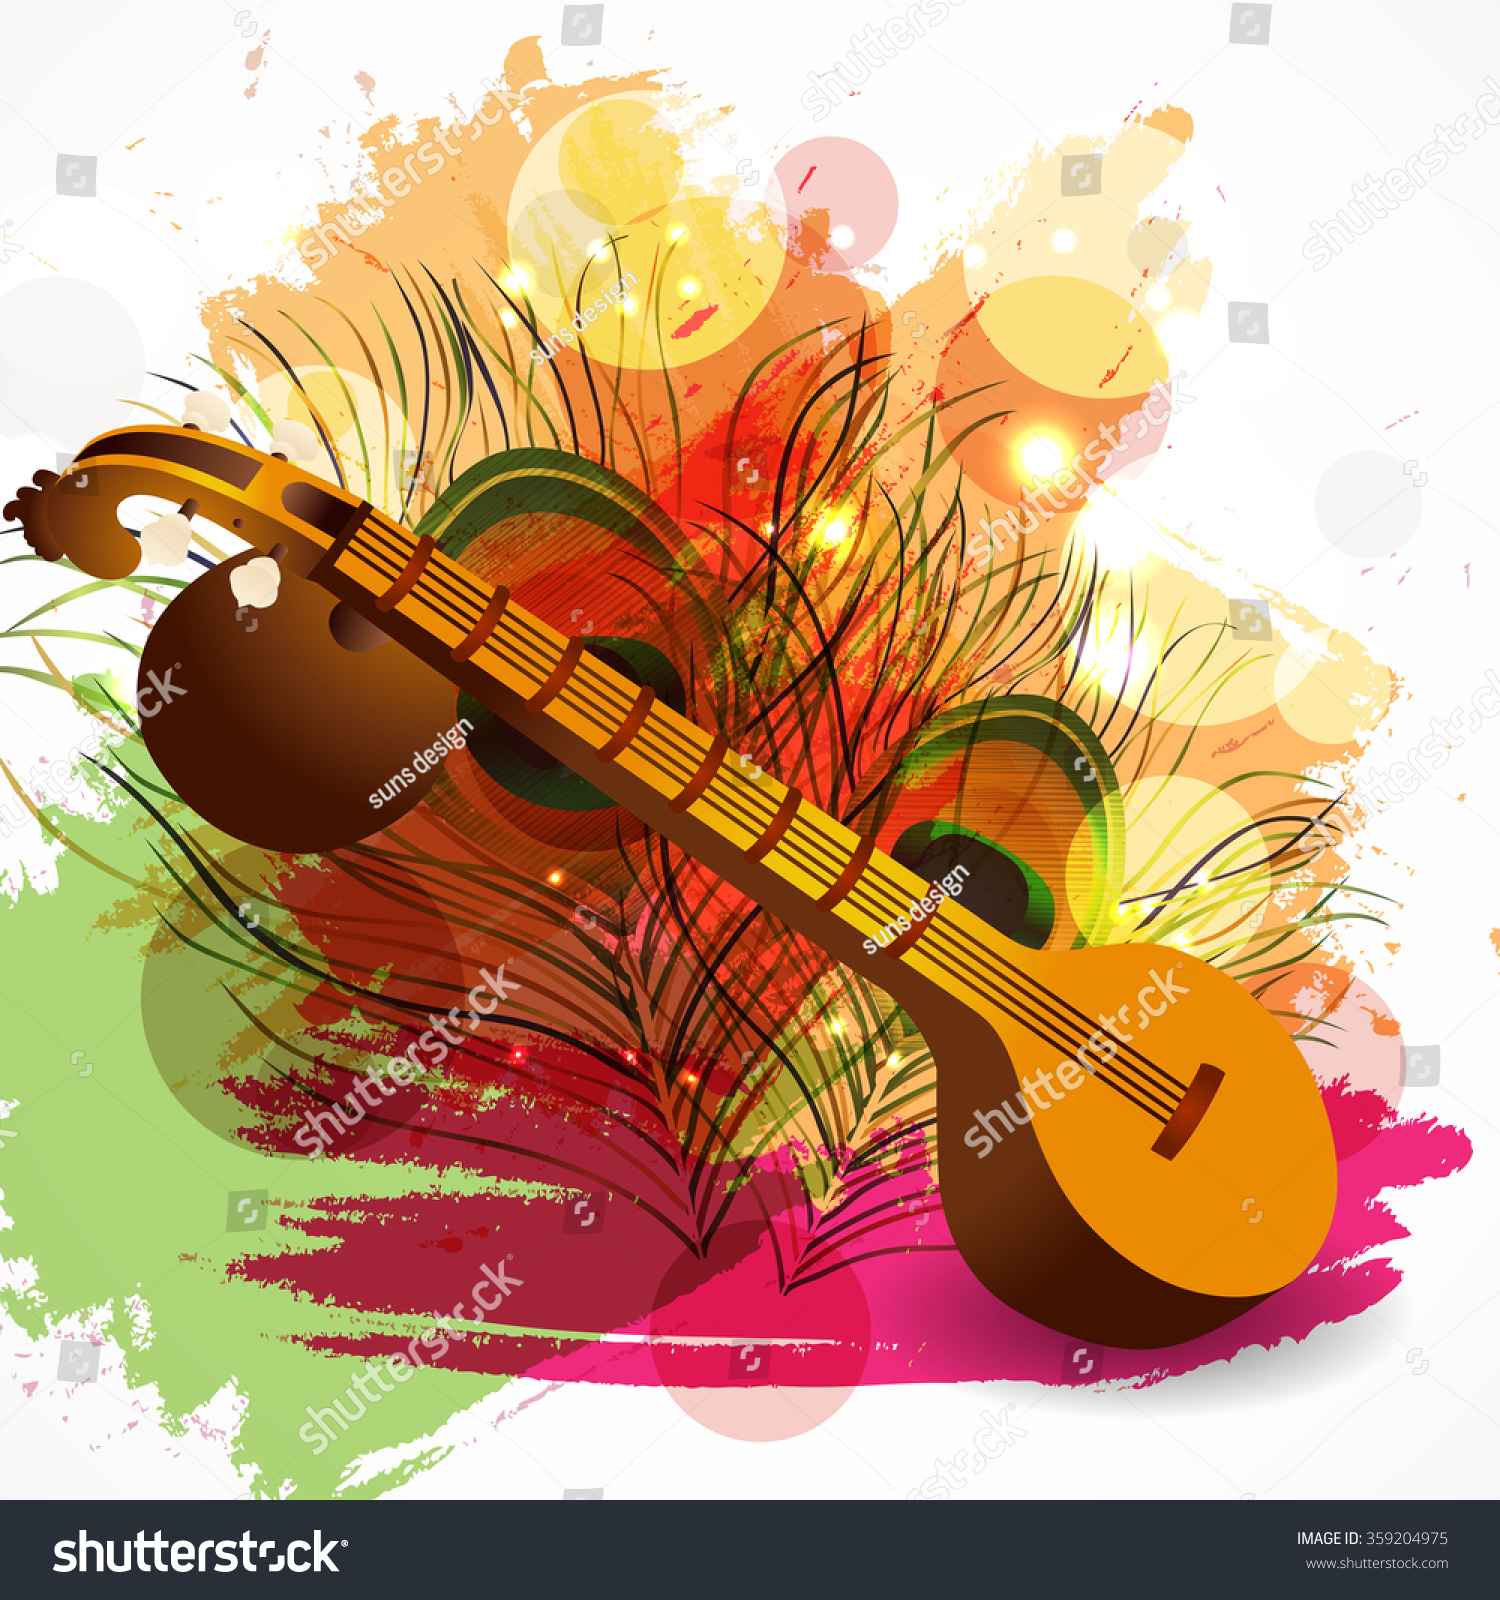 Vector illustration of a Traditional musical instrument Veena with religious offerings on rangoli for Hindu Community festival Vasant Panchami celebration